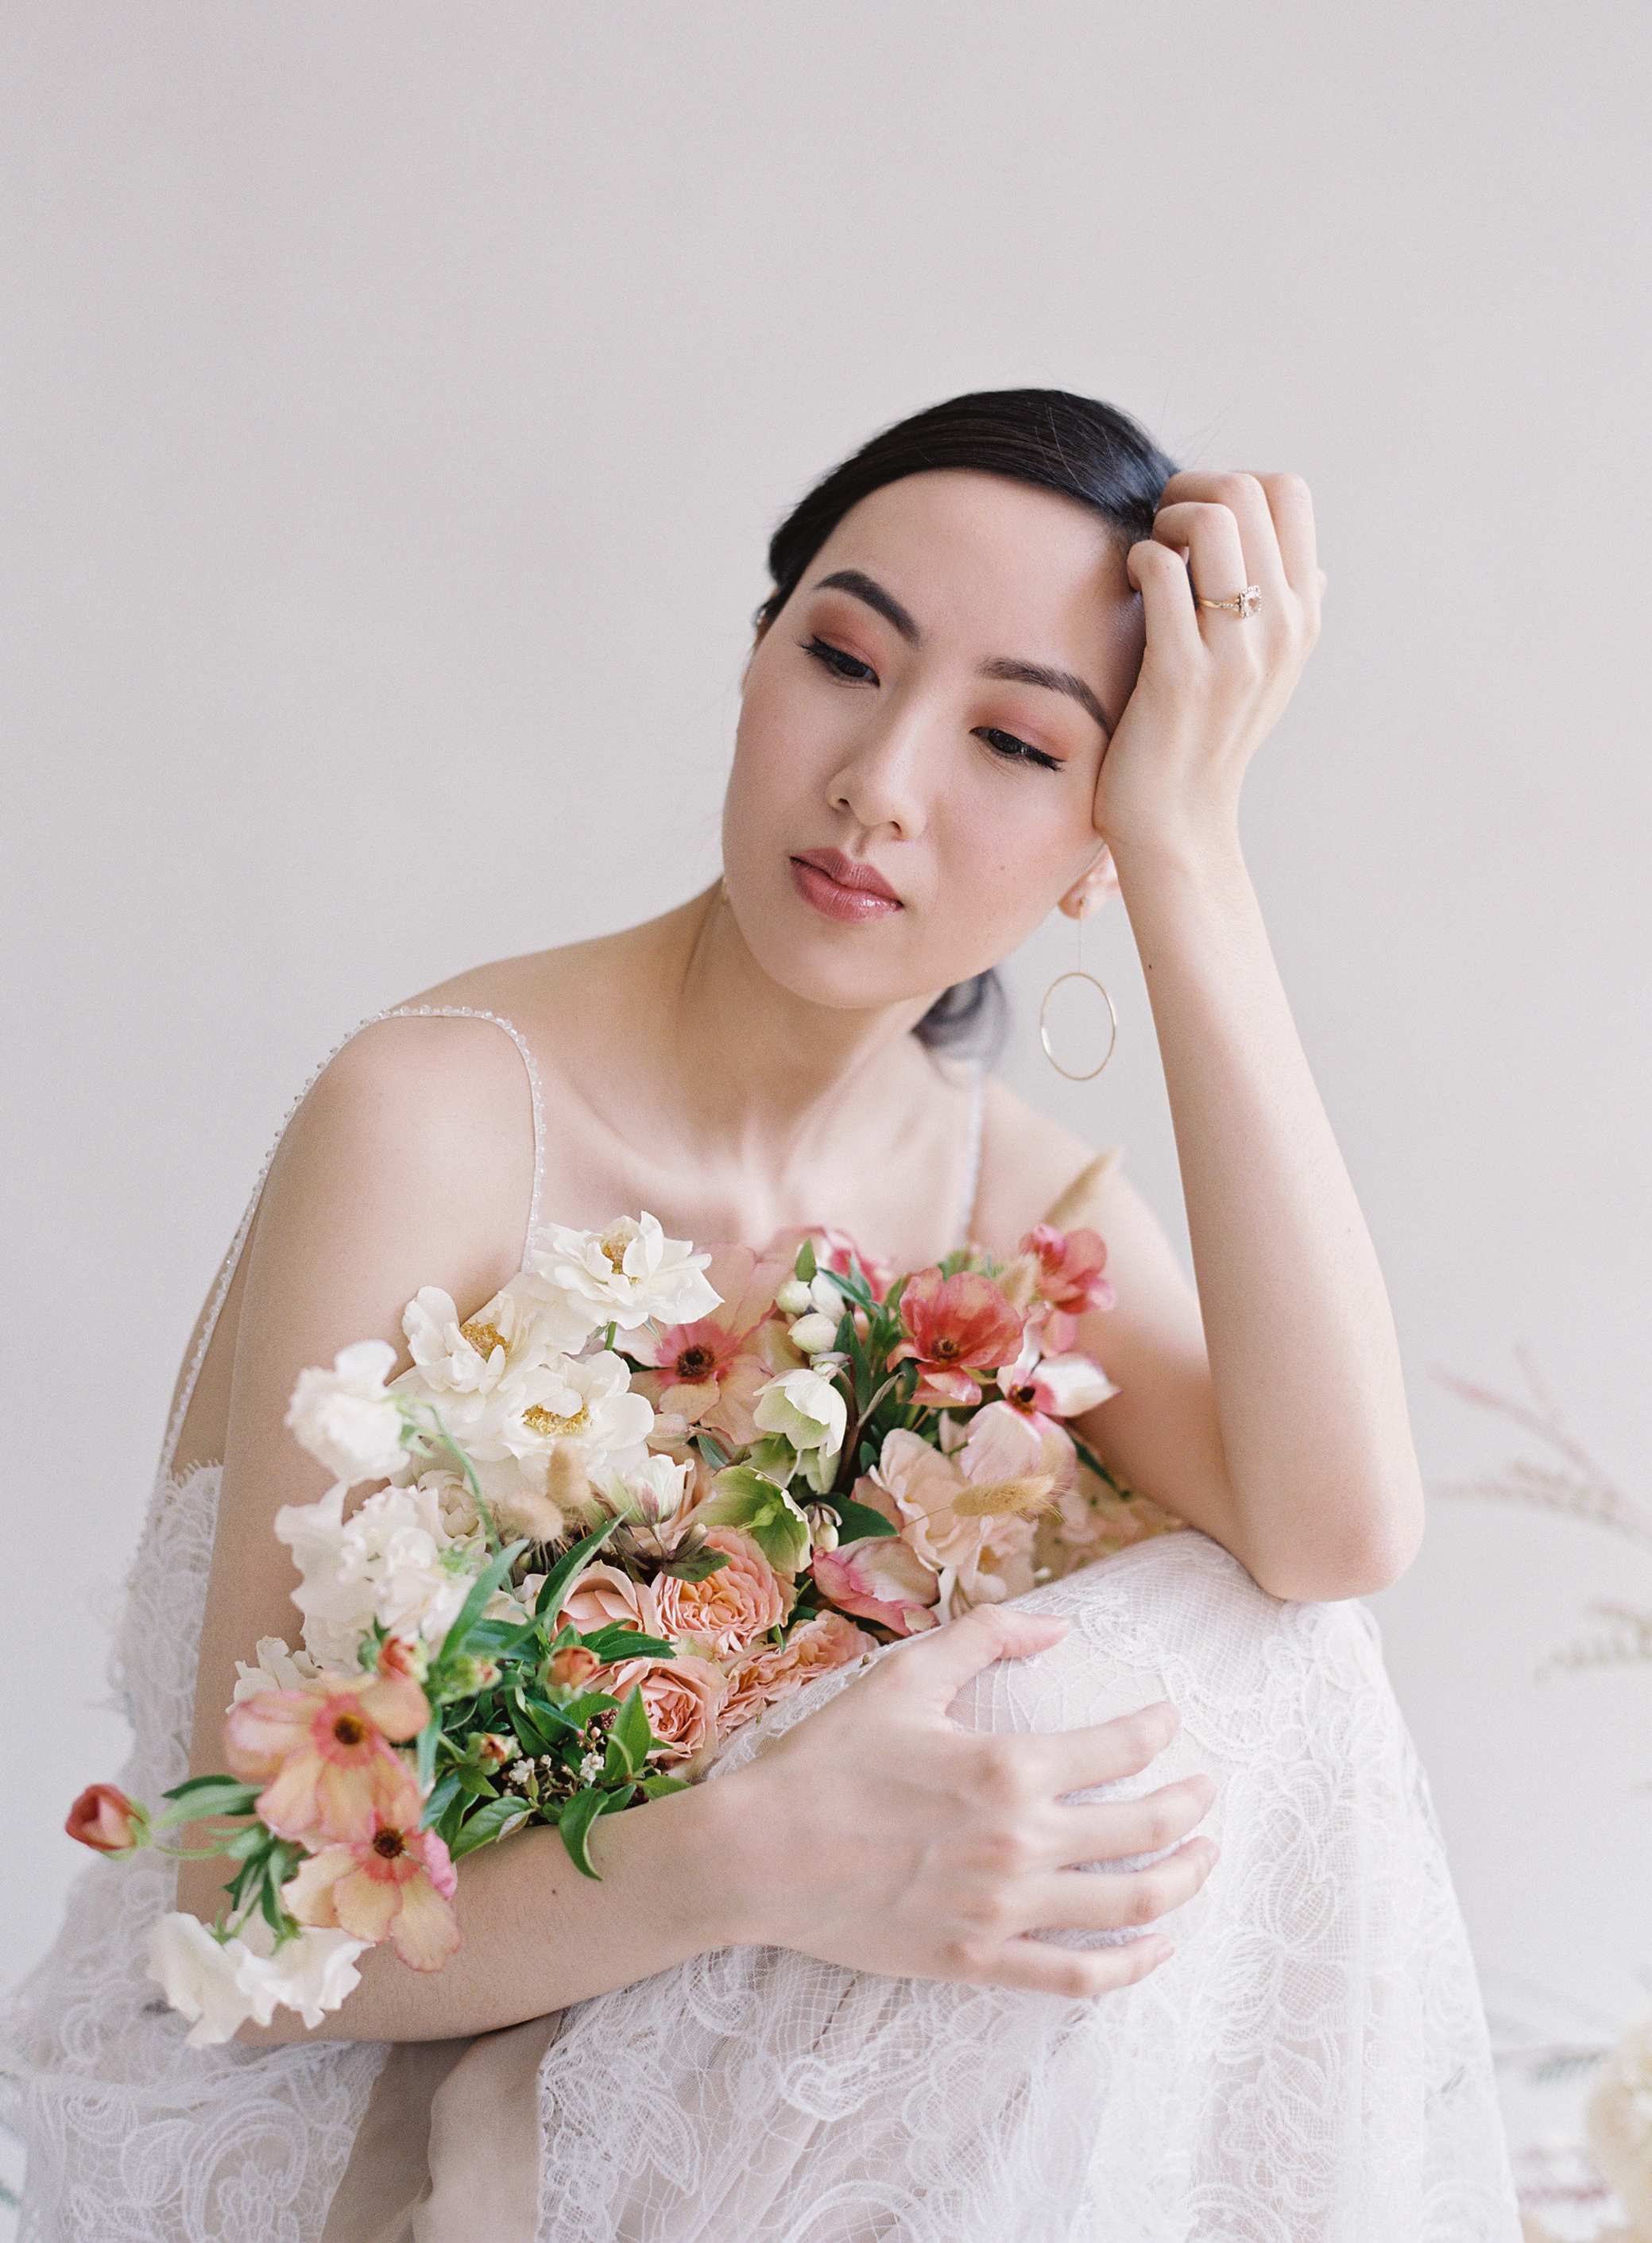 125-Makeup_by_Page_Beauty-Bouquet_by_Ellamah-Photo_by_Christine_Donee-Gown_by_Flora.jpg